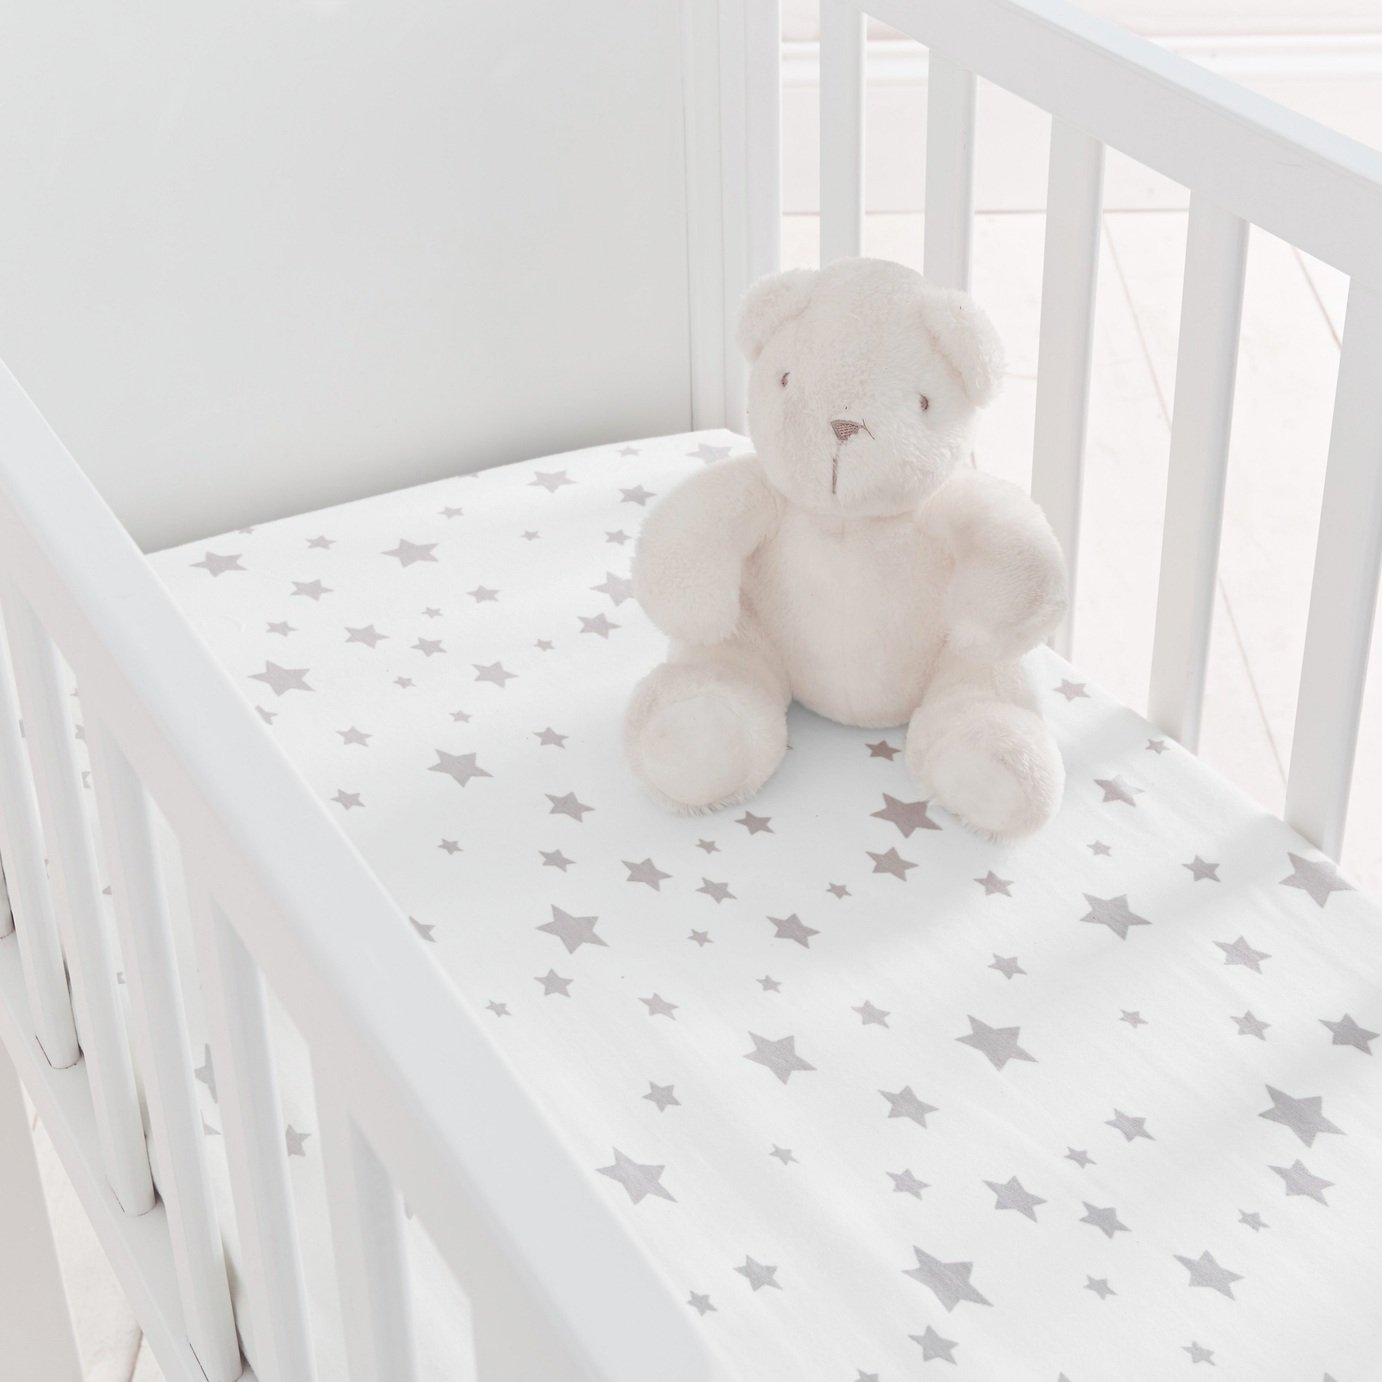 Silentnight Fitted Crib Sheet 2 Pack - Grey Stars